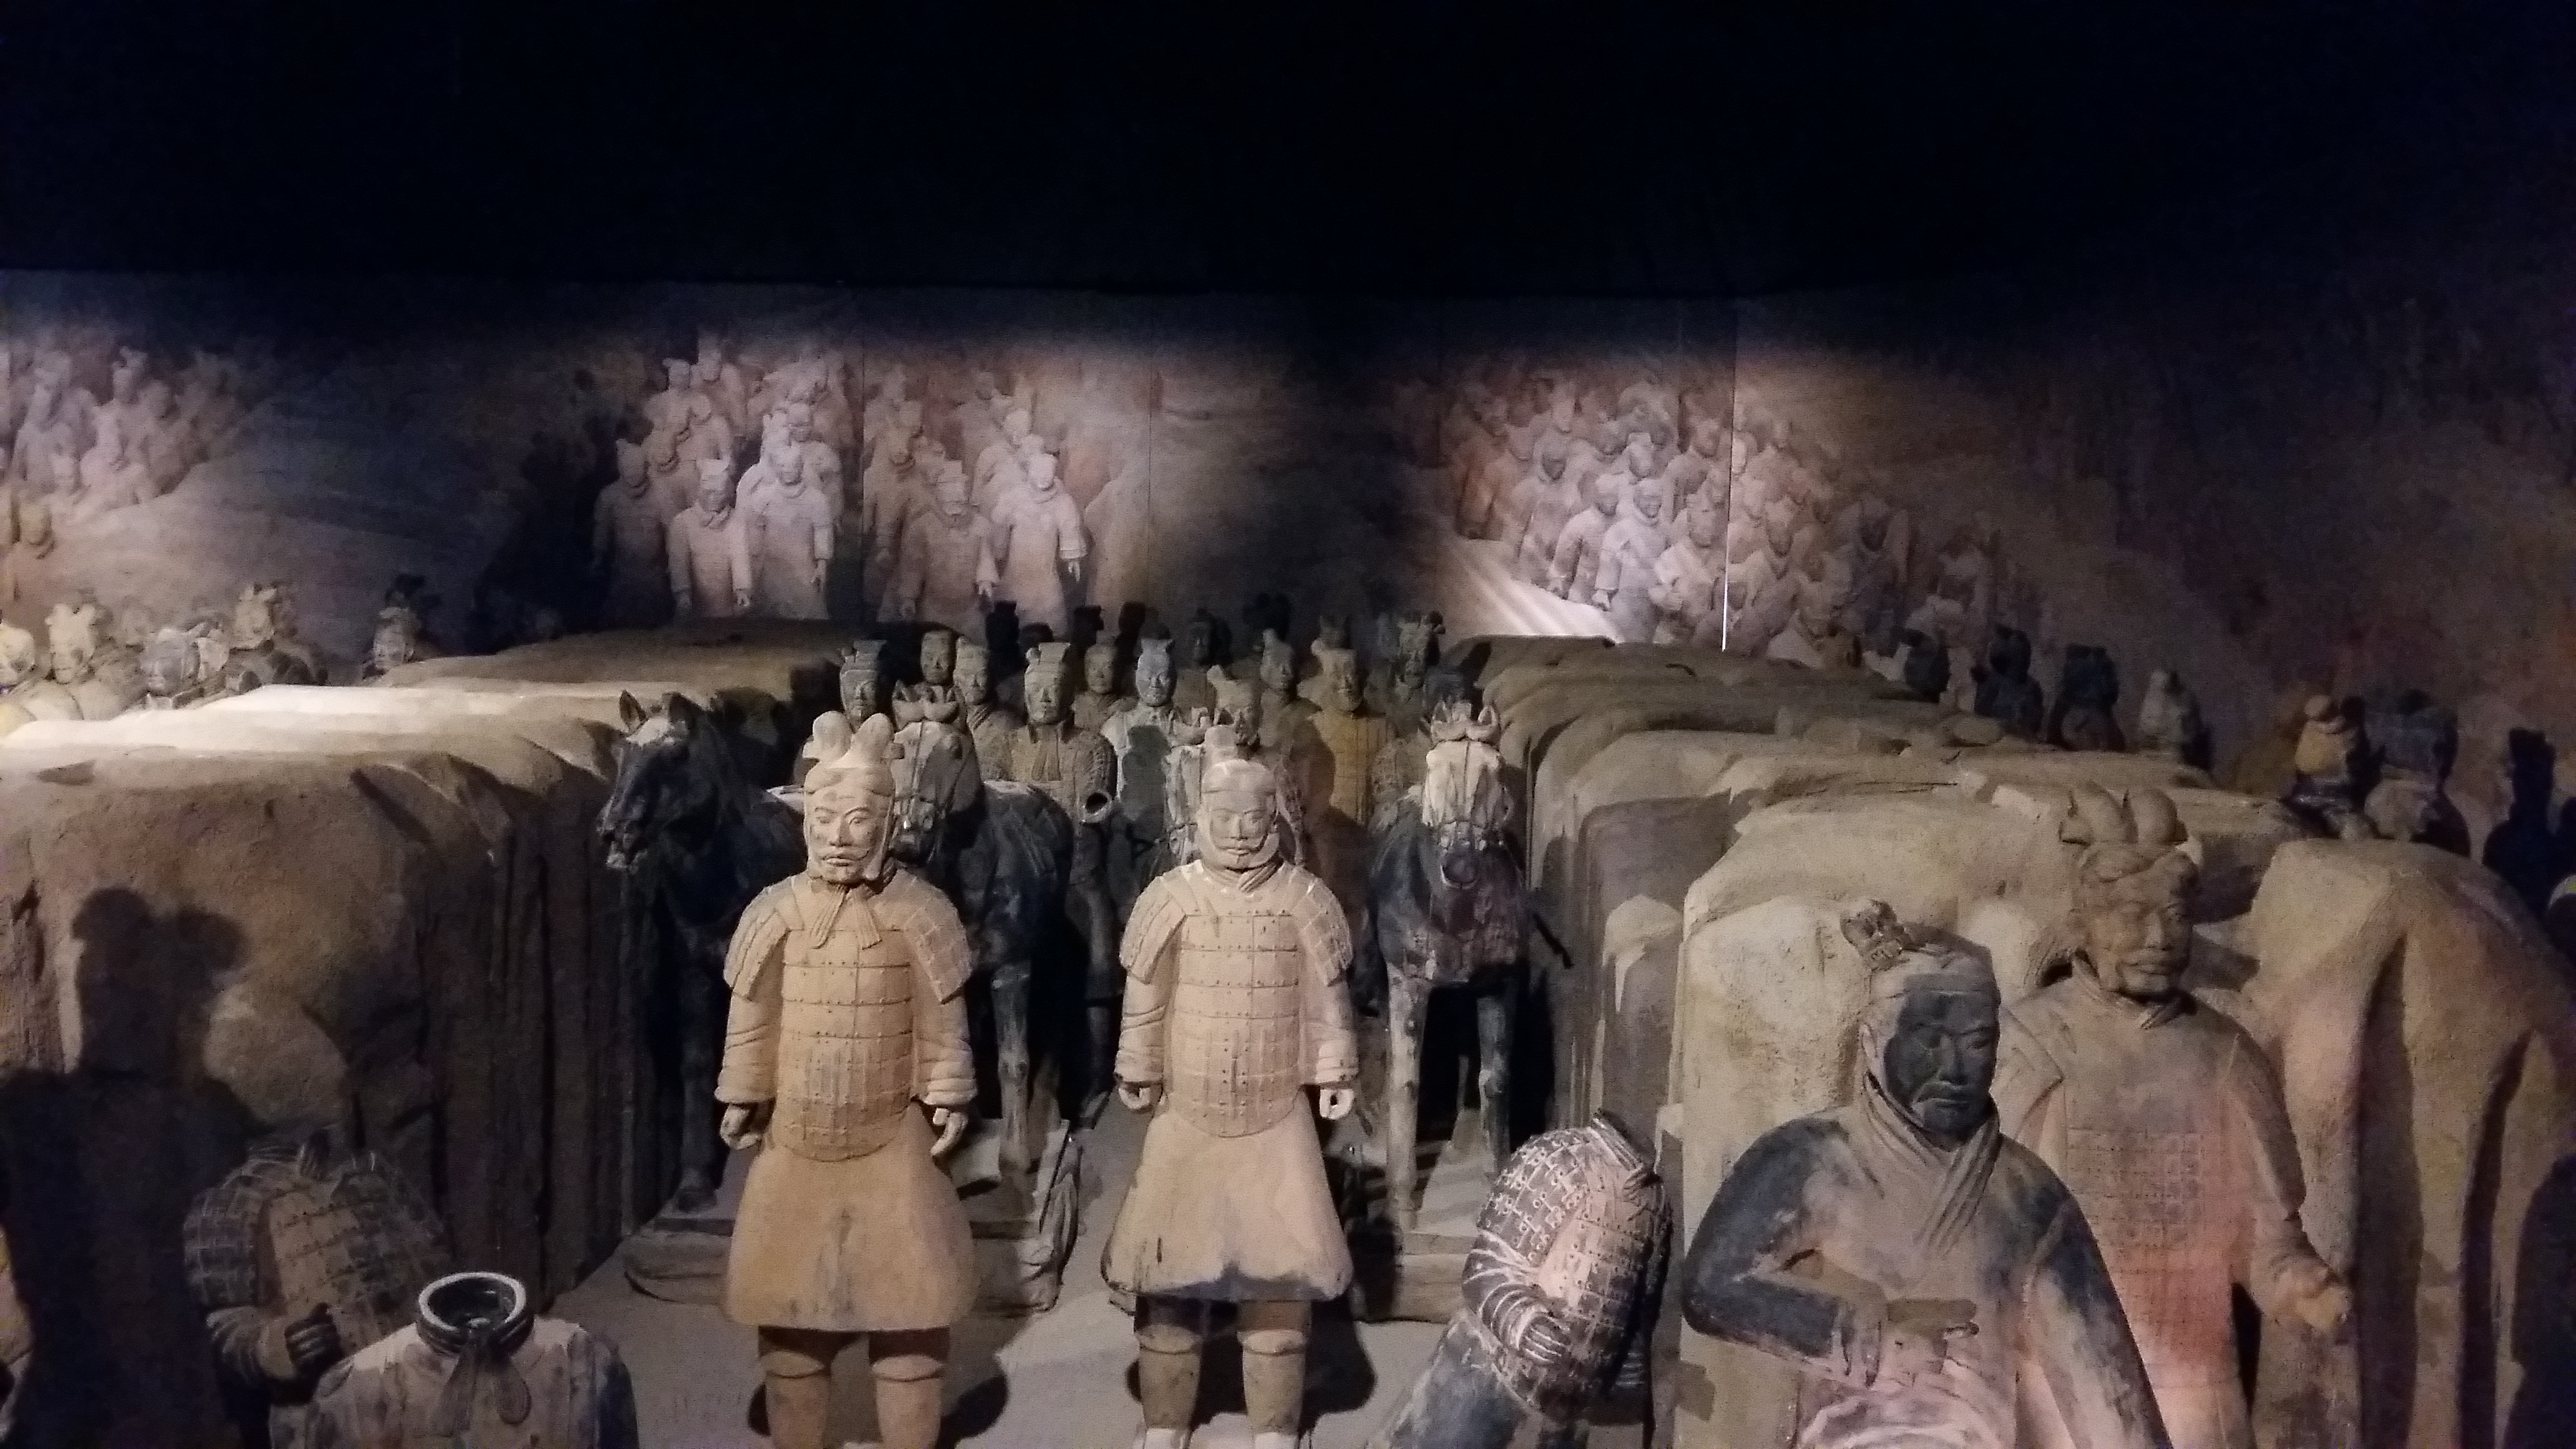 Ludwigsburg Terrakotta The Terracotta Army Exhibition My Train Of Thoughts On